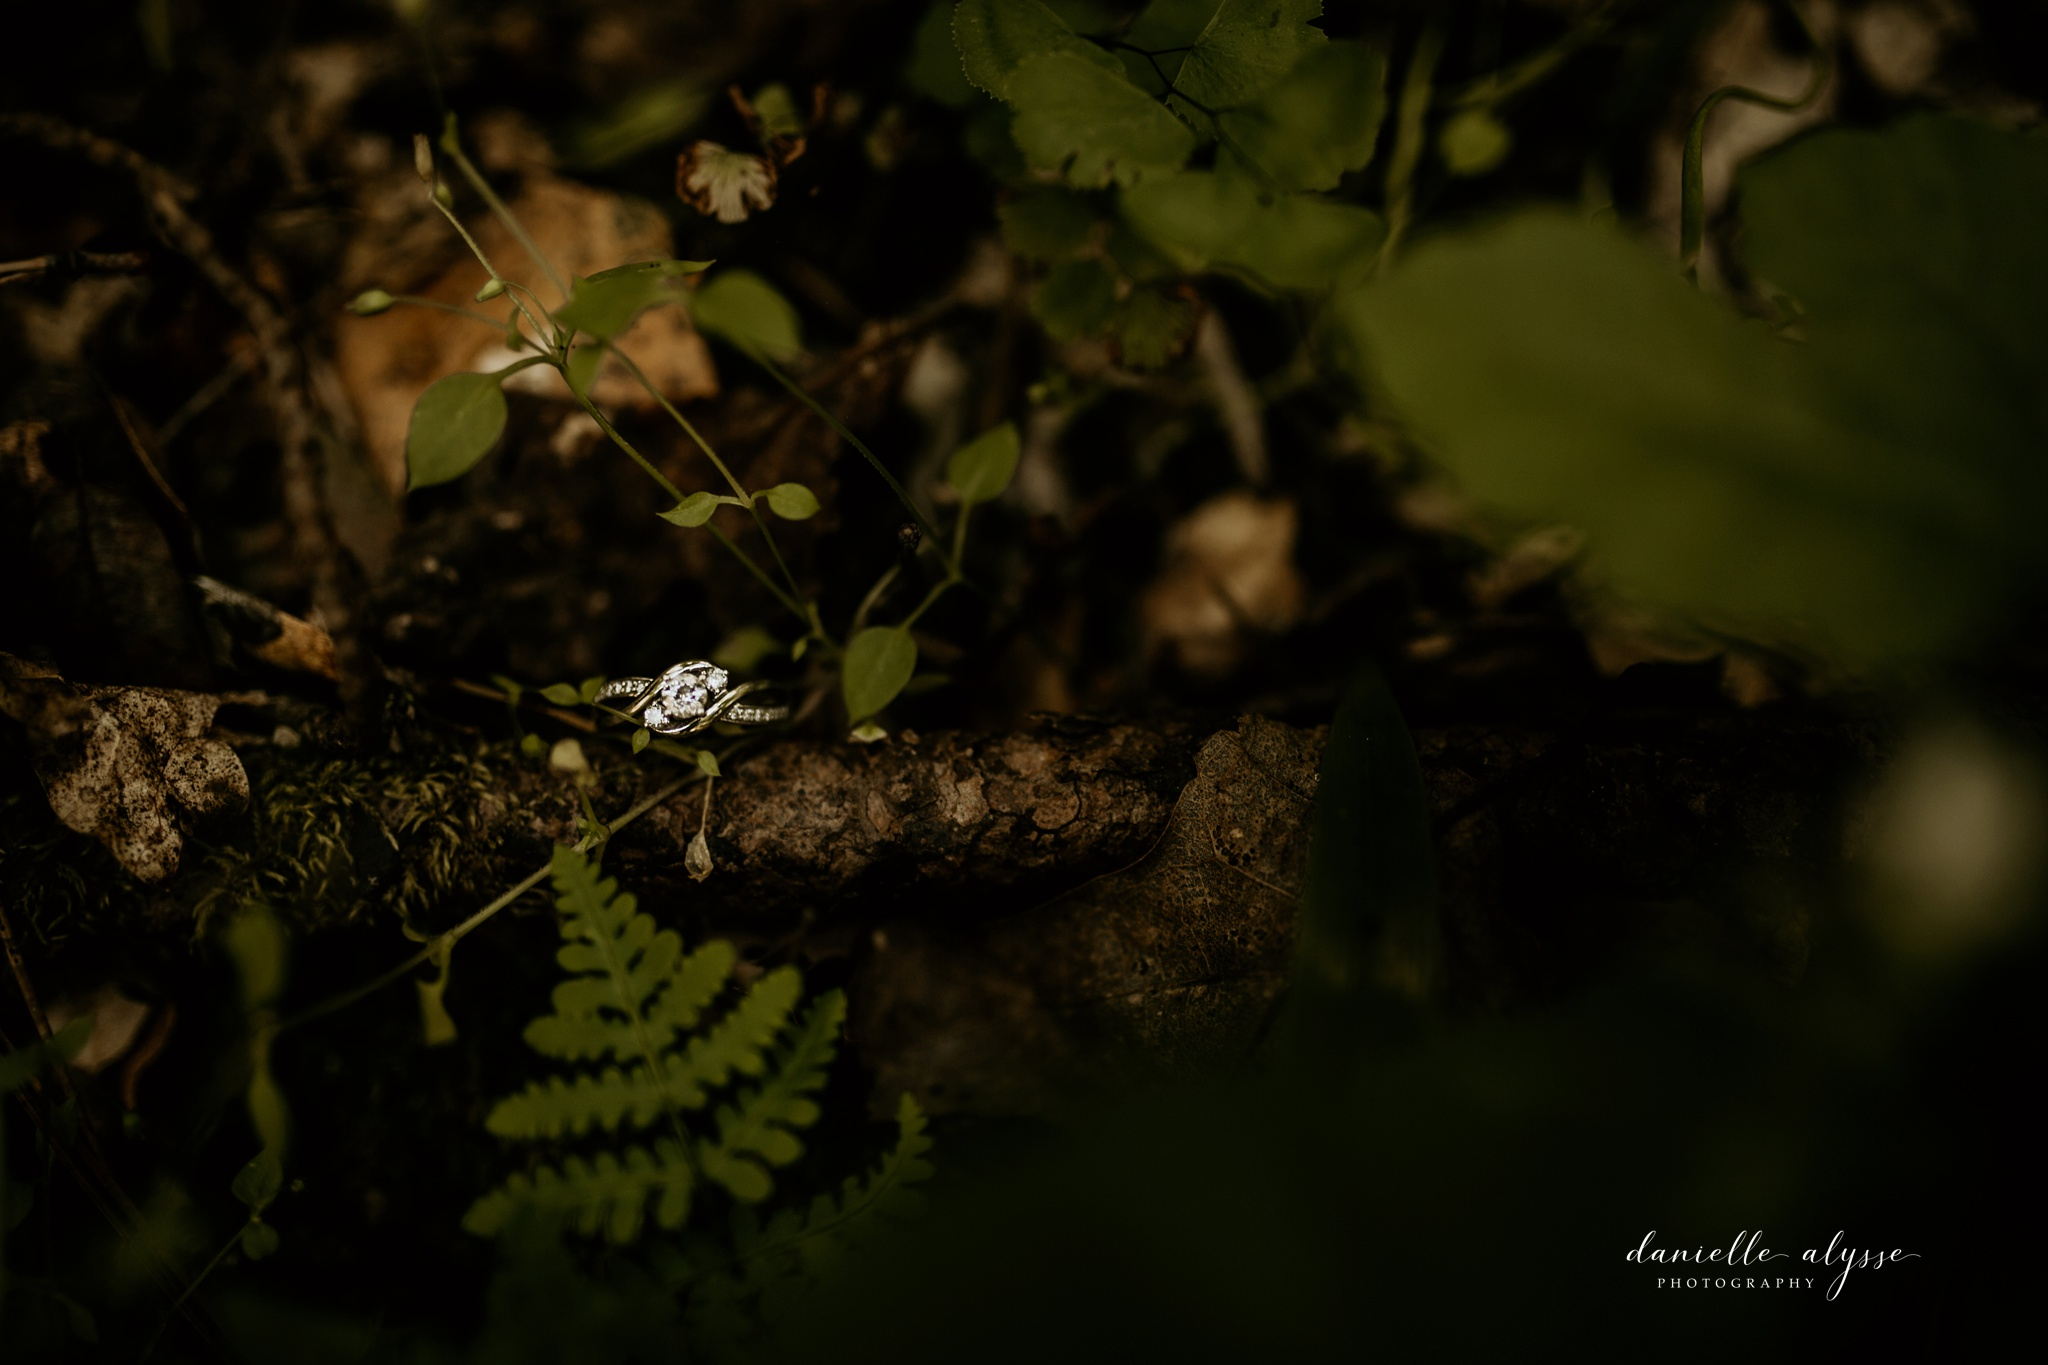 180425_engagement_monica_auburn_water_falls_auburn_danielle_alysse_photography_sacramento_photographer_blog_1_WEB.jpg